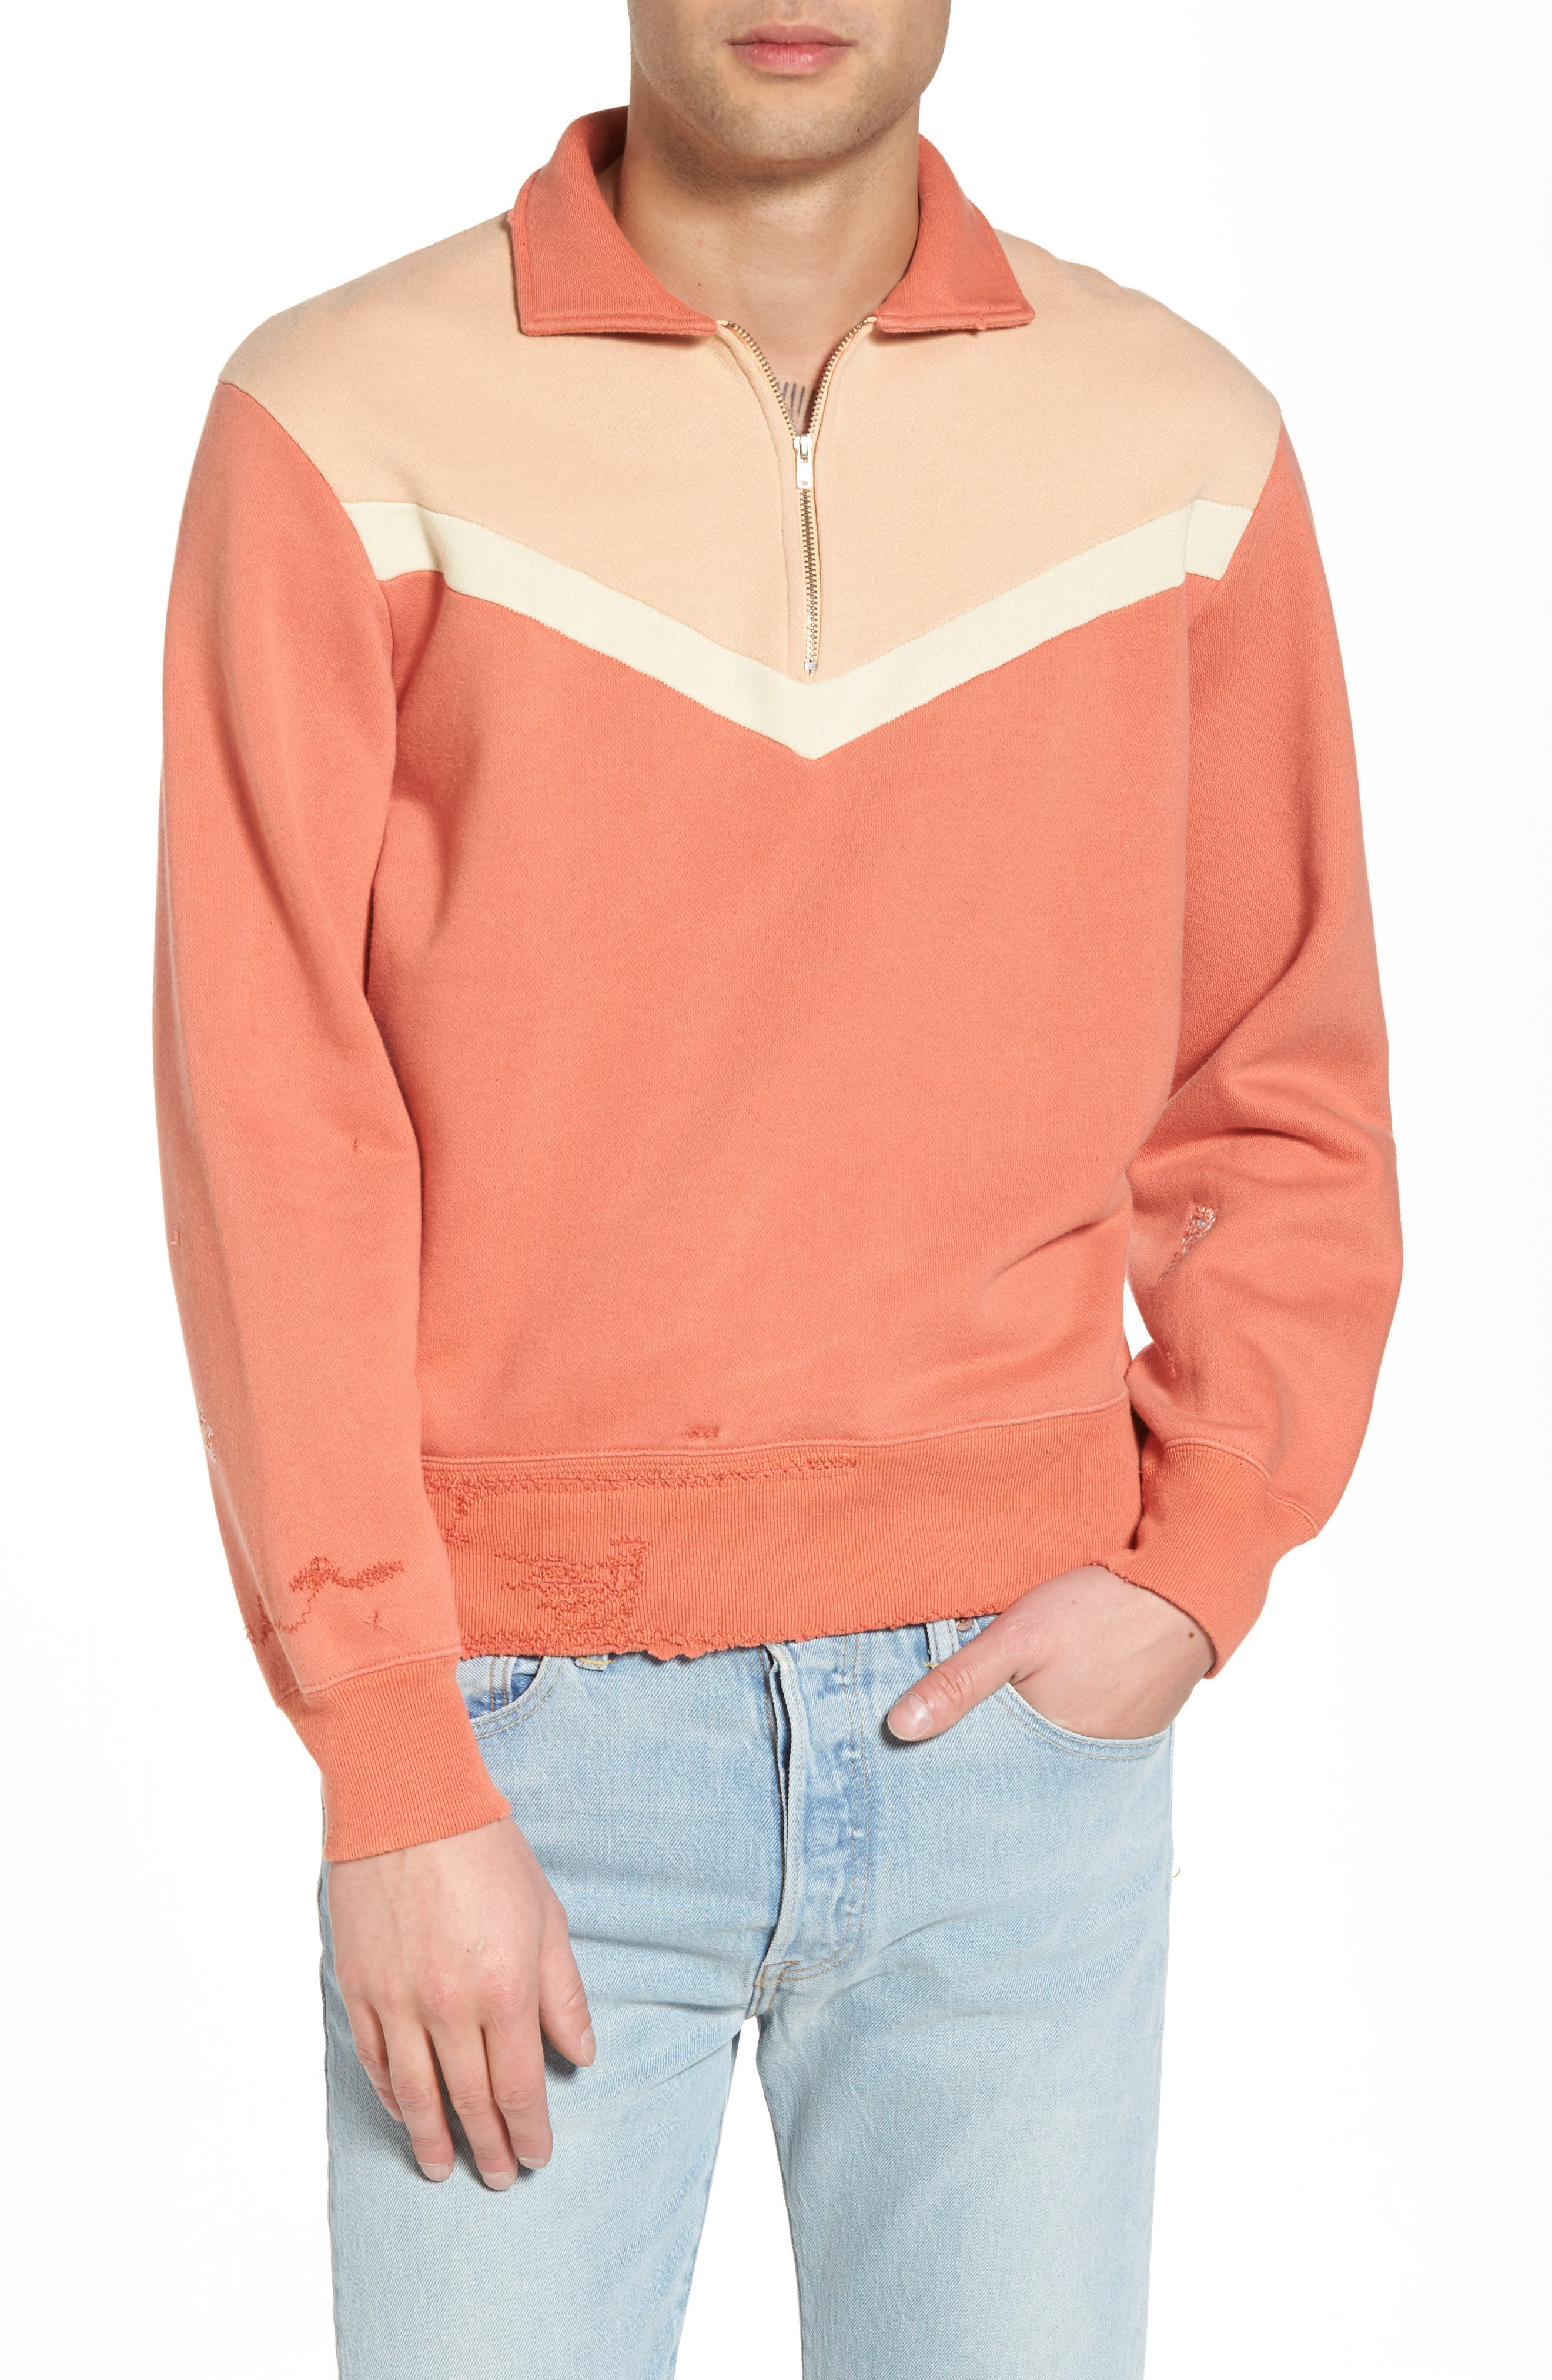 Main Image - Levi's® Vintage Clothing Colorblocked Quarter Zip Pullover